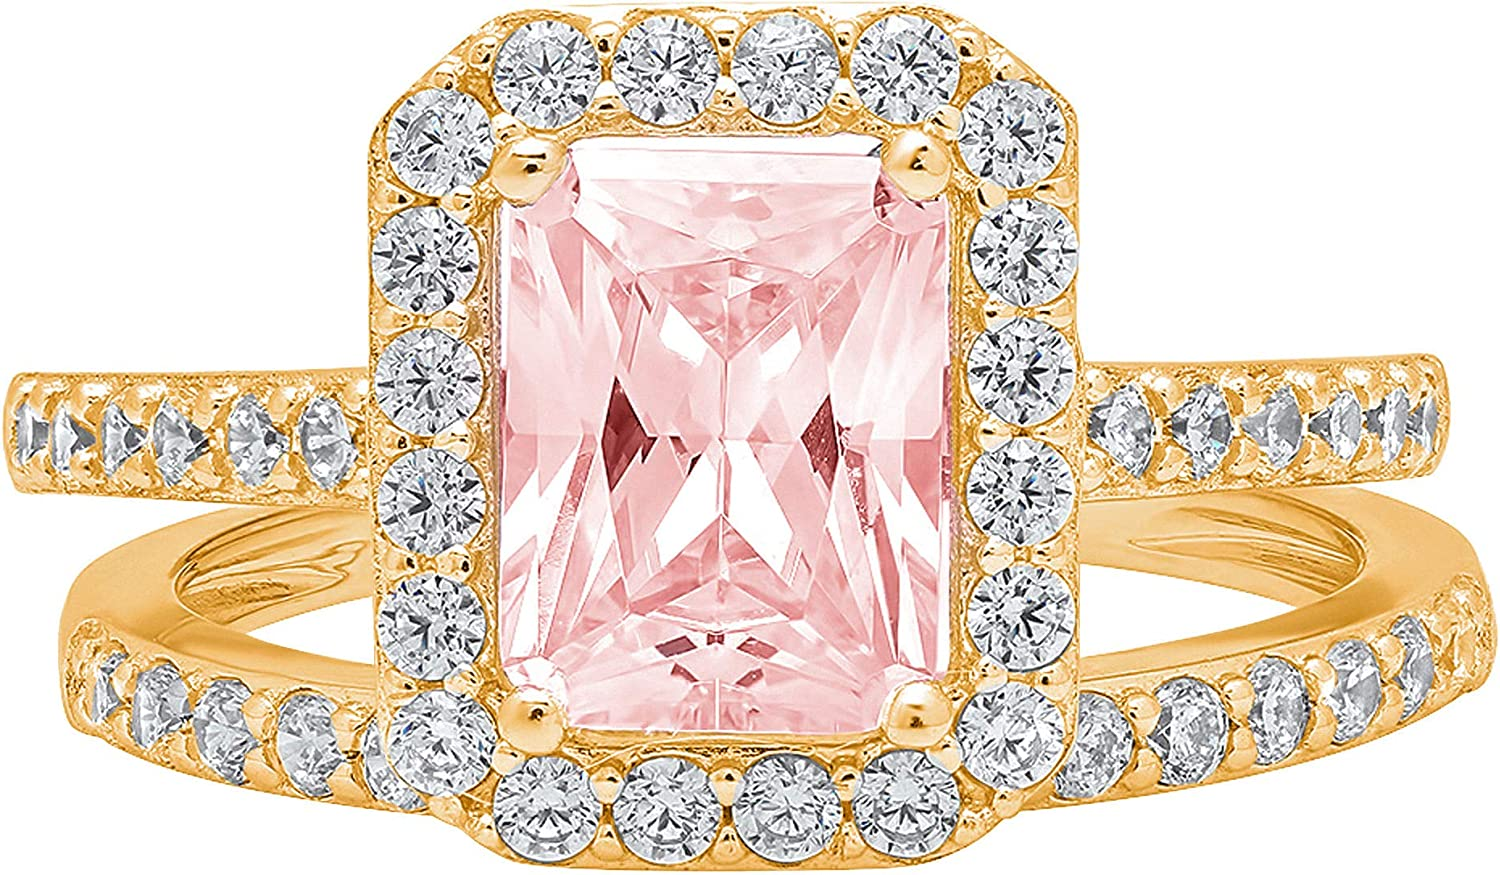 2.14ct Emerald Round Cut Pave Halo Solitaire with Accent VVS1 Ideal Pink Simulated Diamond CZ Engagement Promise Designer Anniversary Wedding Bridal ring band set 14k Yellow Gold